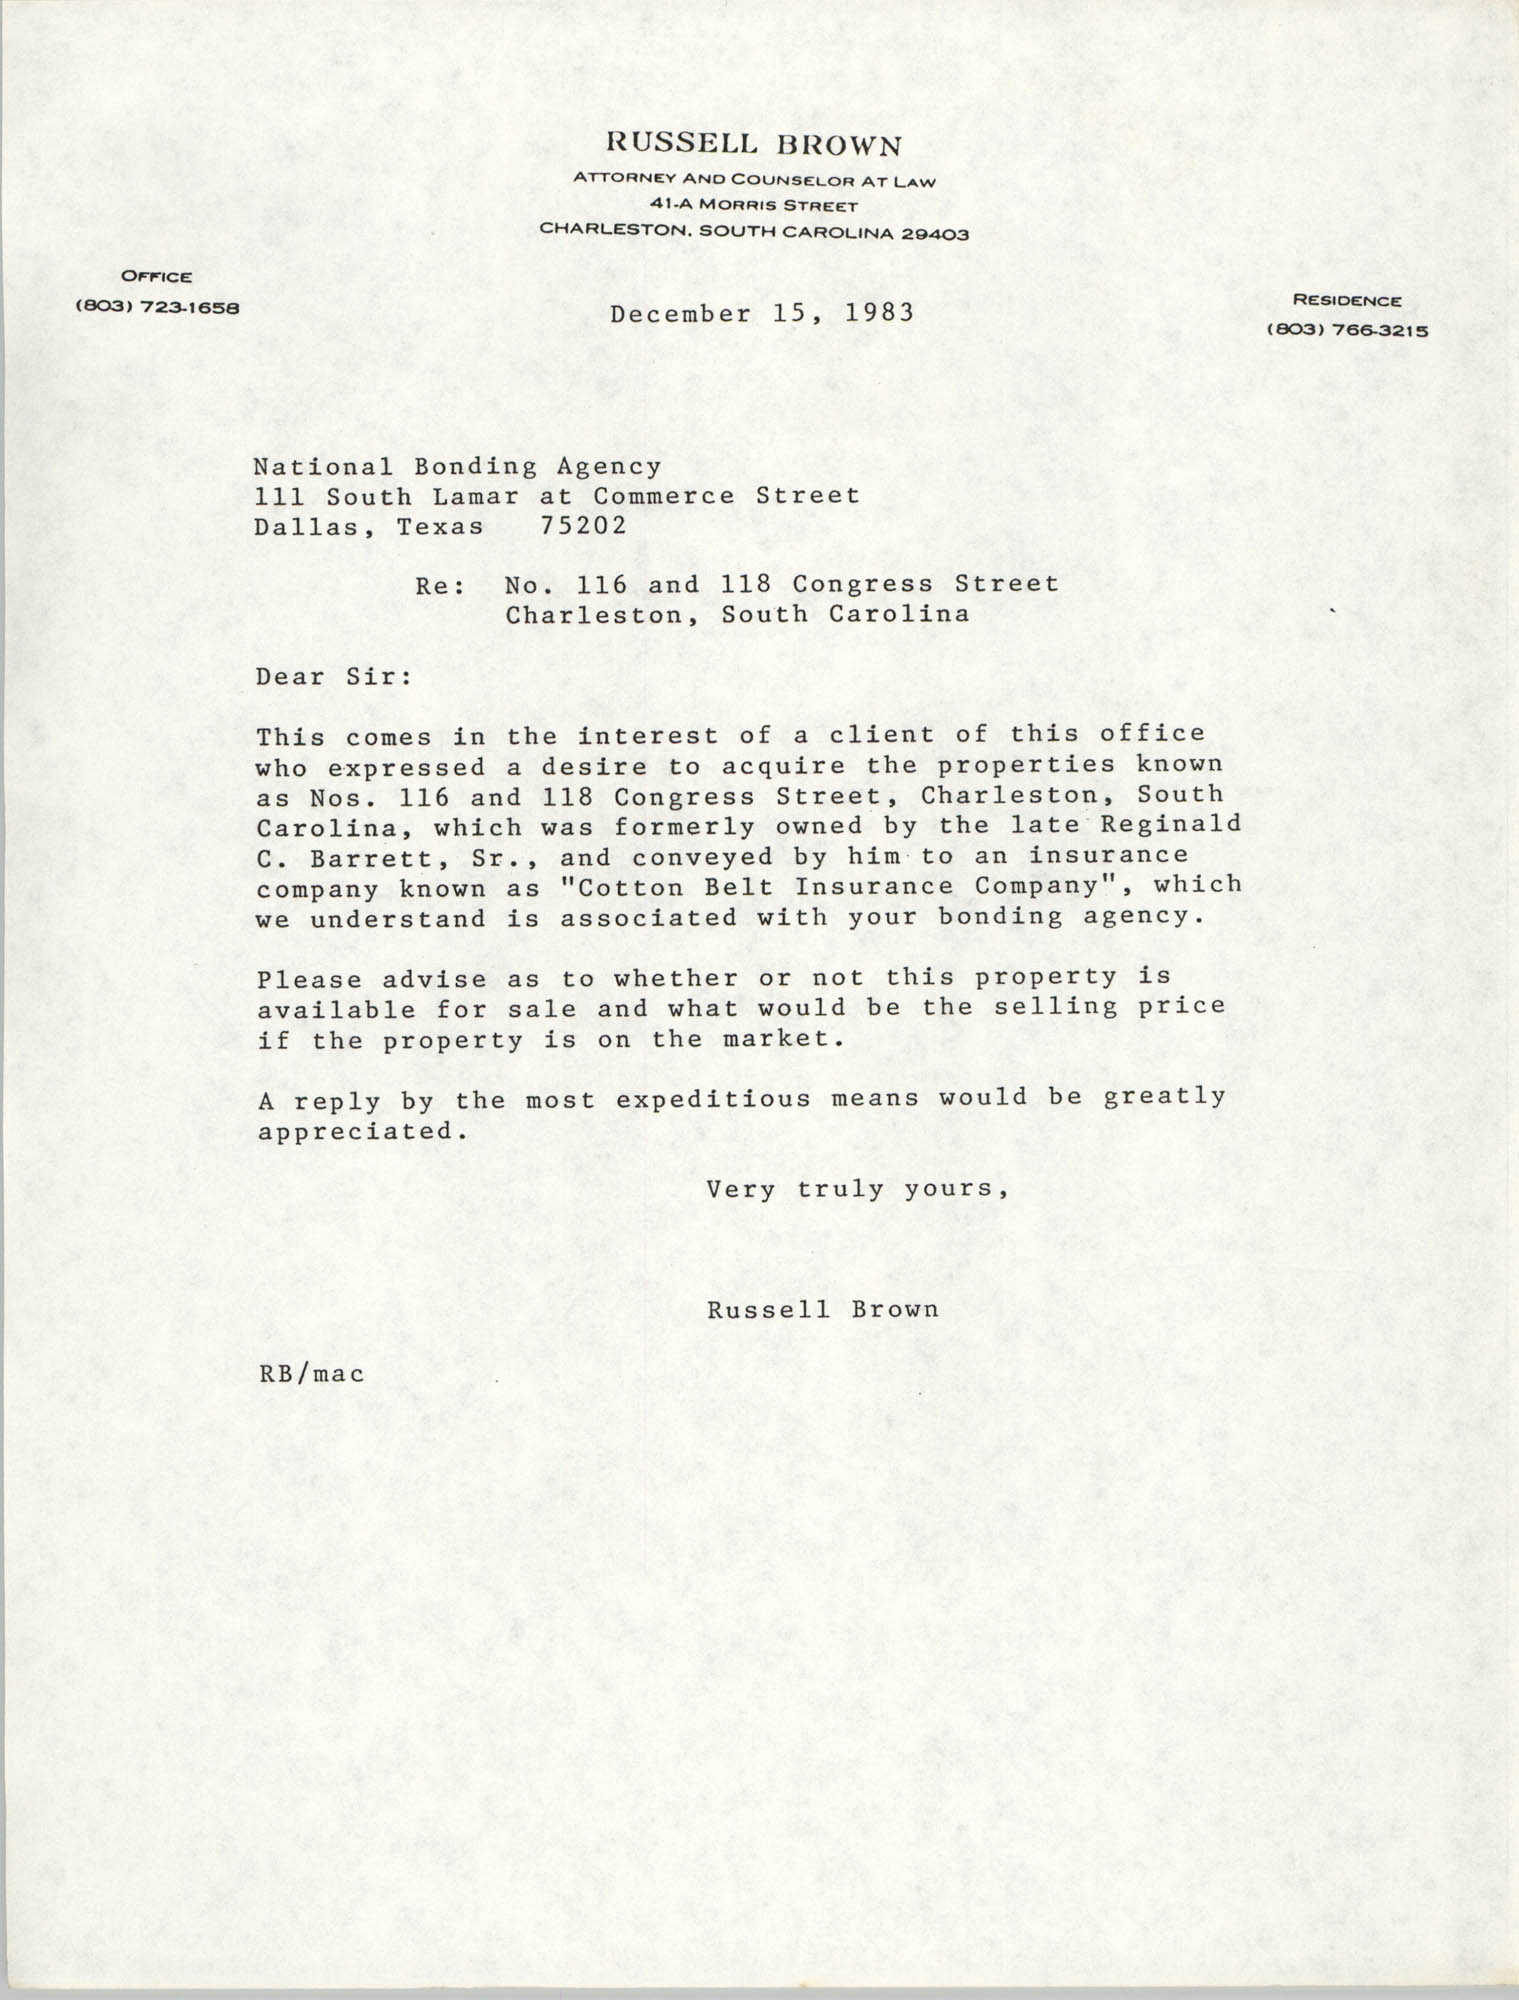 Letter from Russell Brown to the National Bonding Agency, December 15, 1983